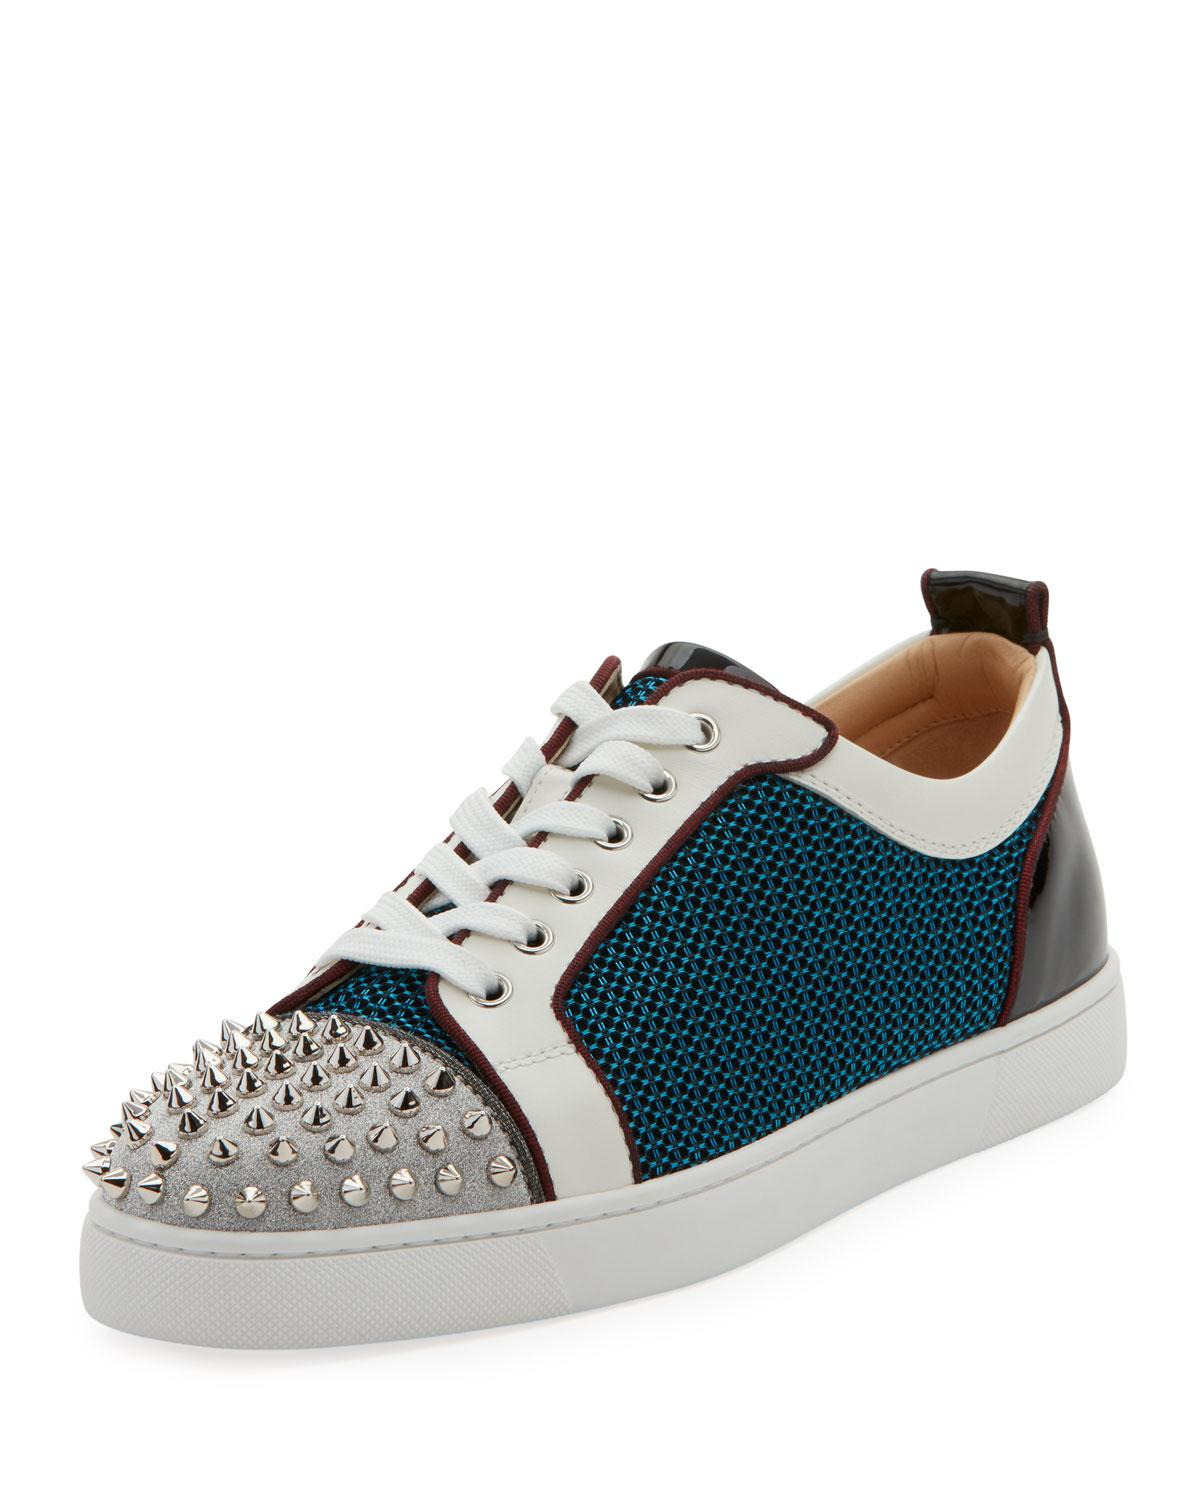 super popular a3ffa f790d Men's Louis Junior Spiked Low-Top Sneakers in Version Multi